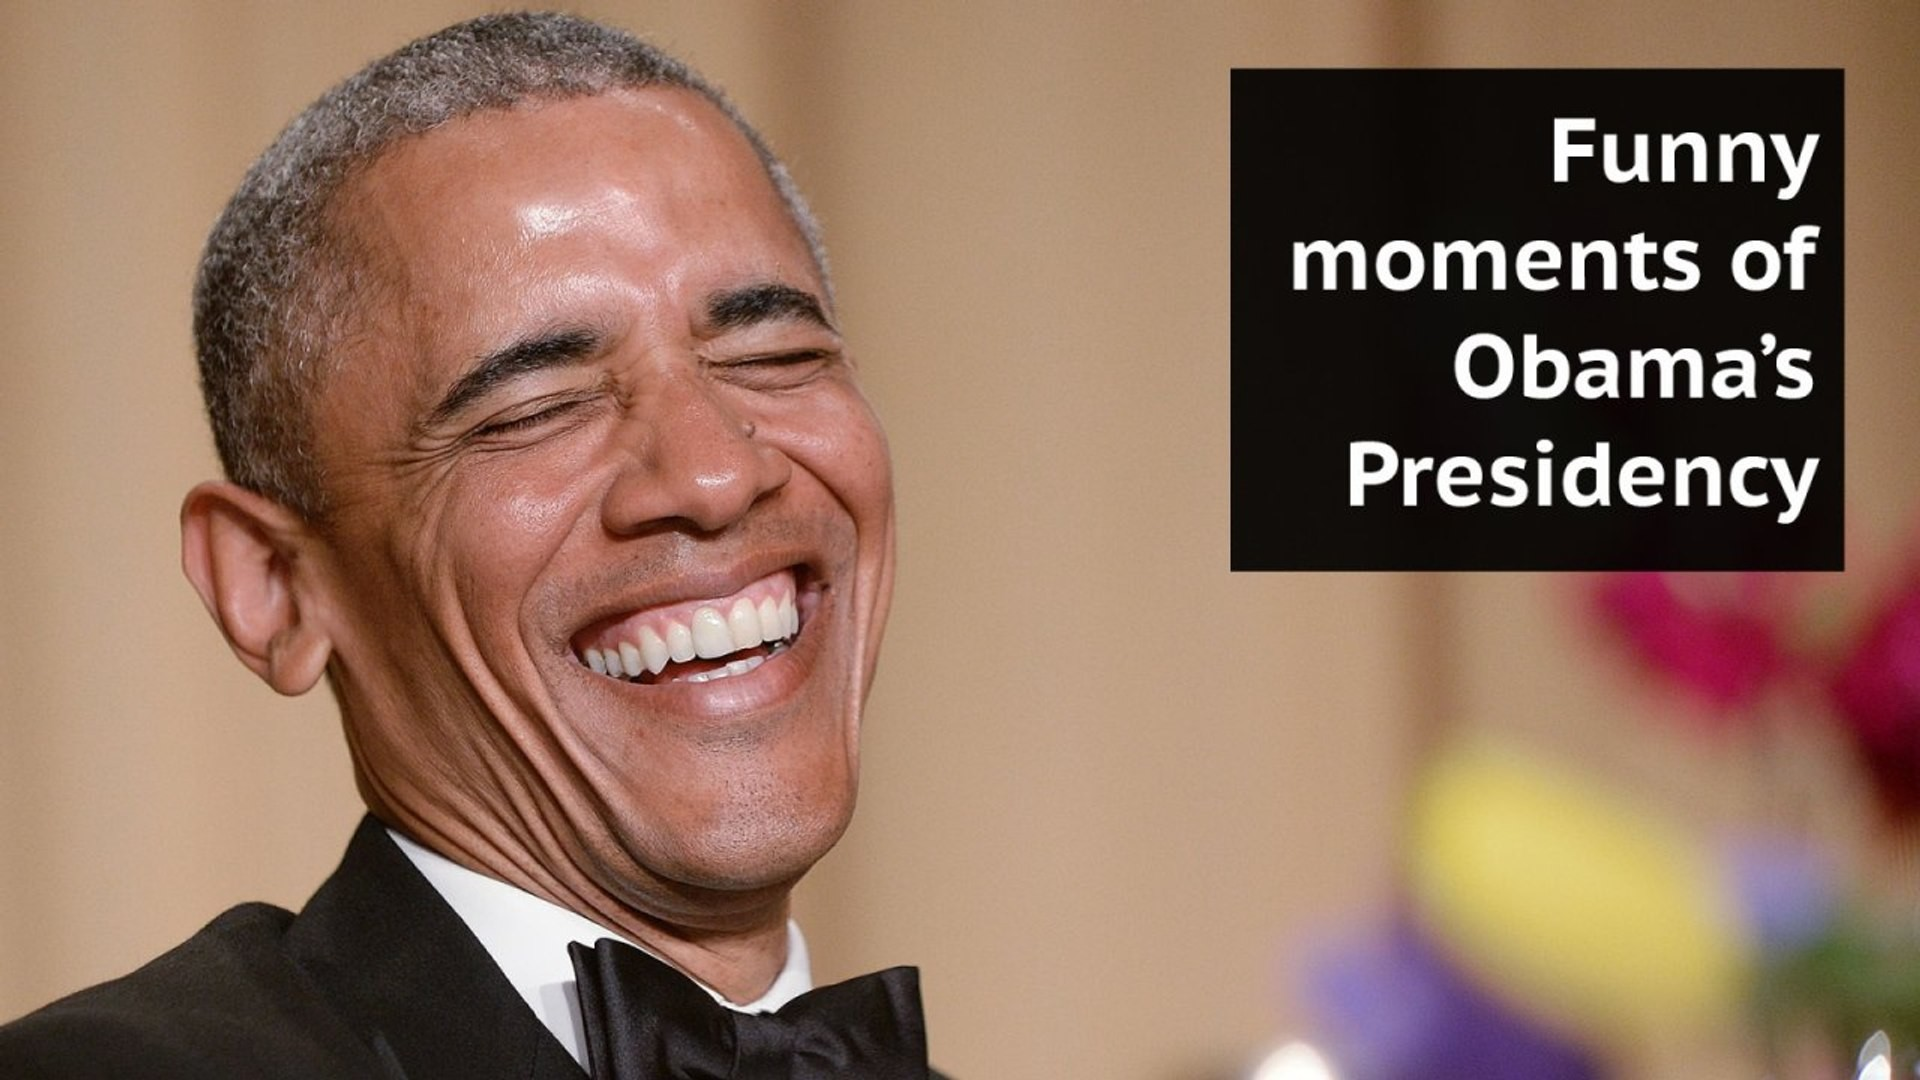 1920x1080 Barack Obama's funniest moments